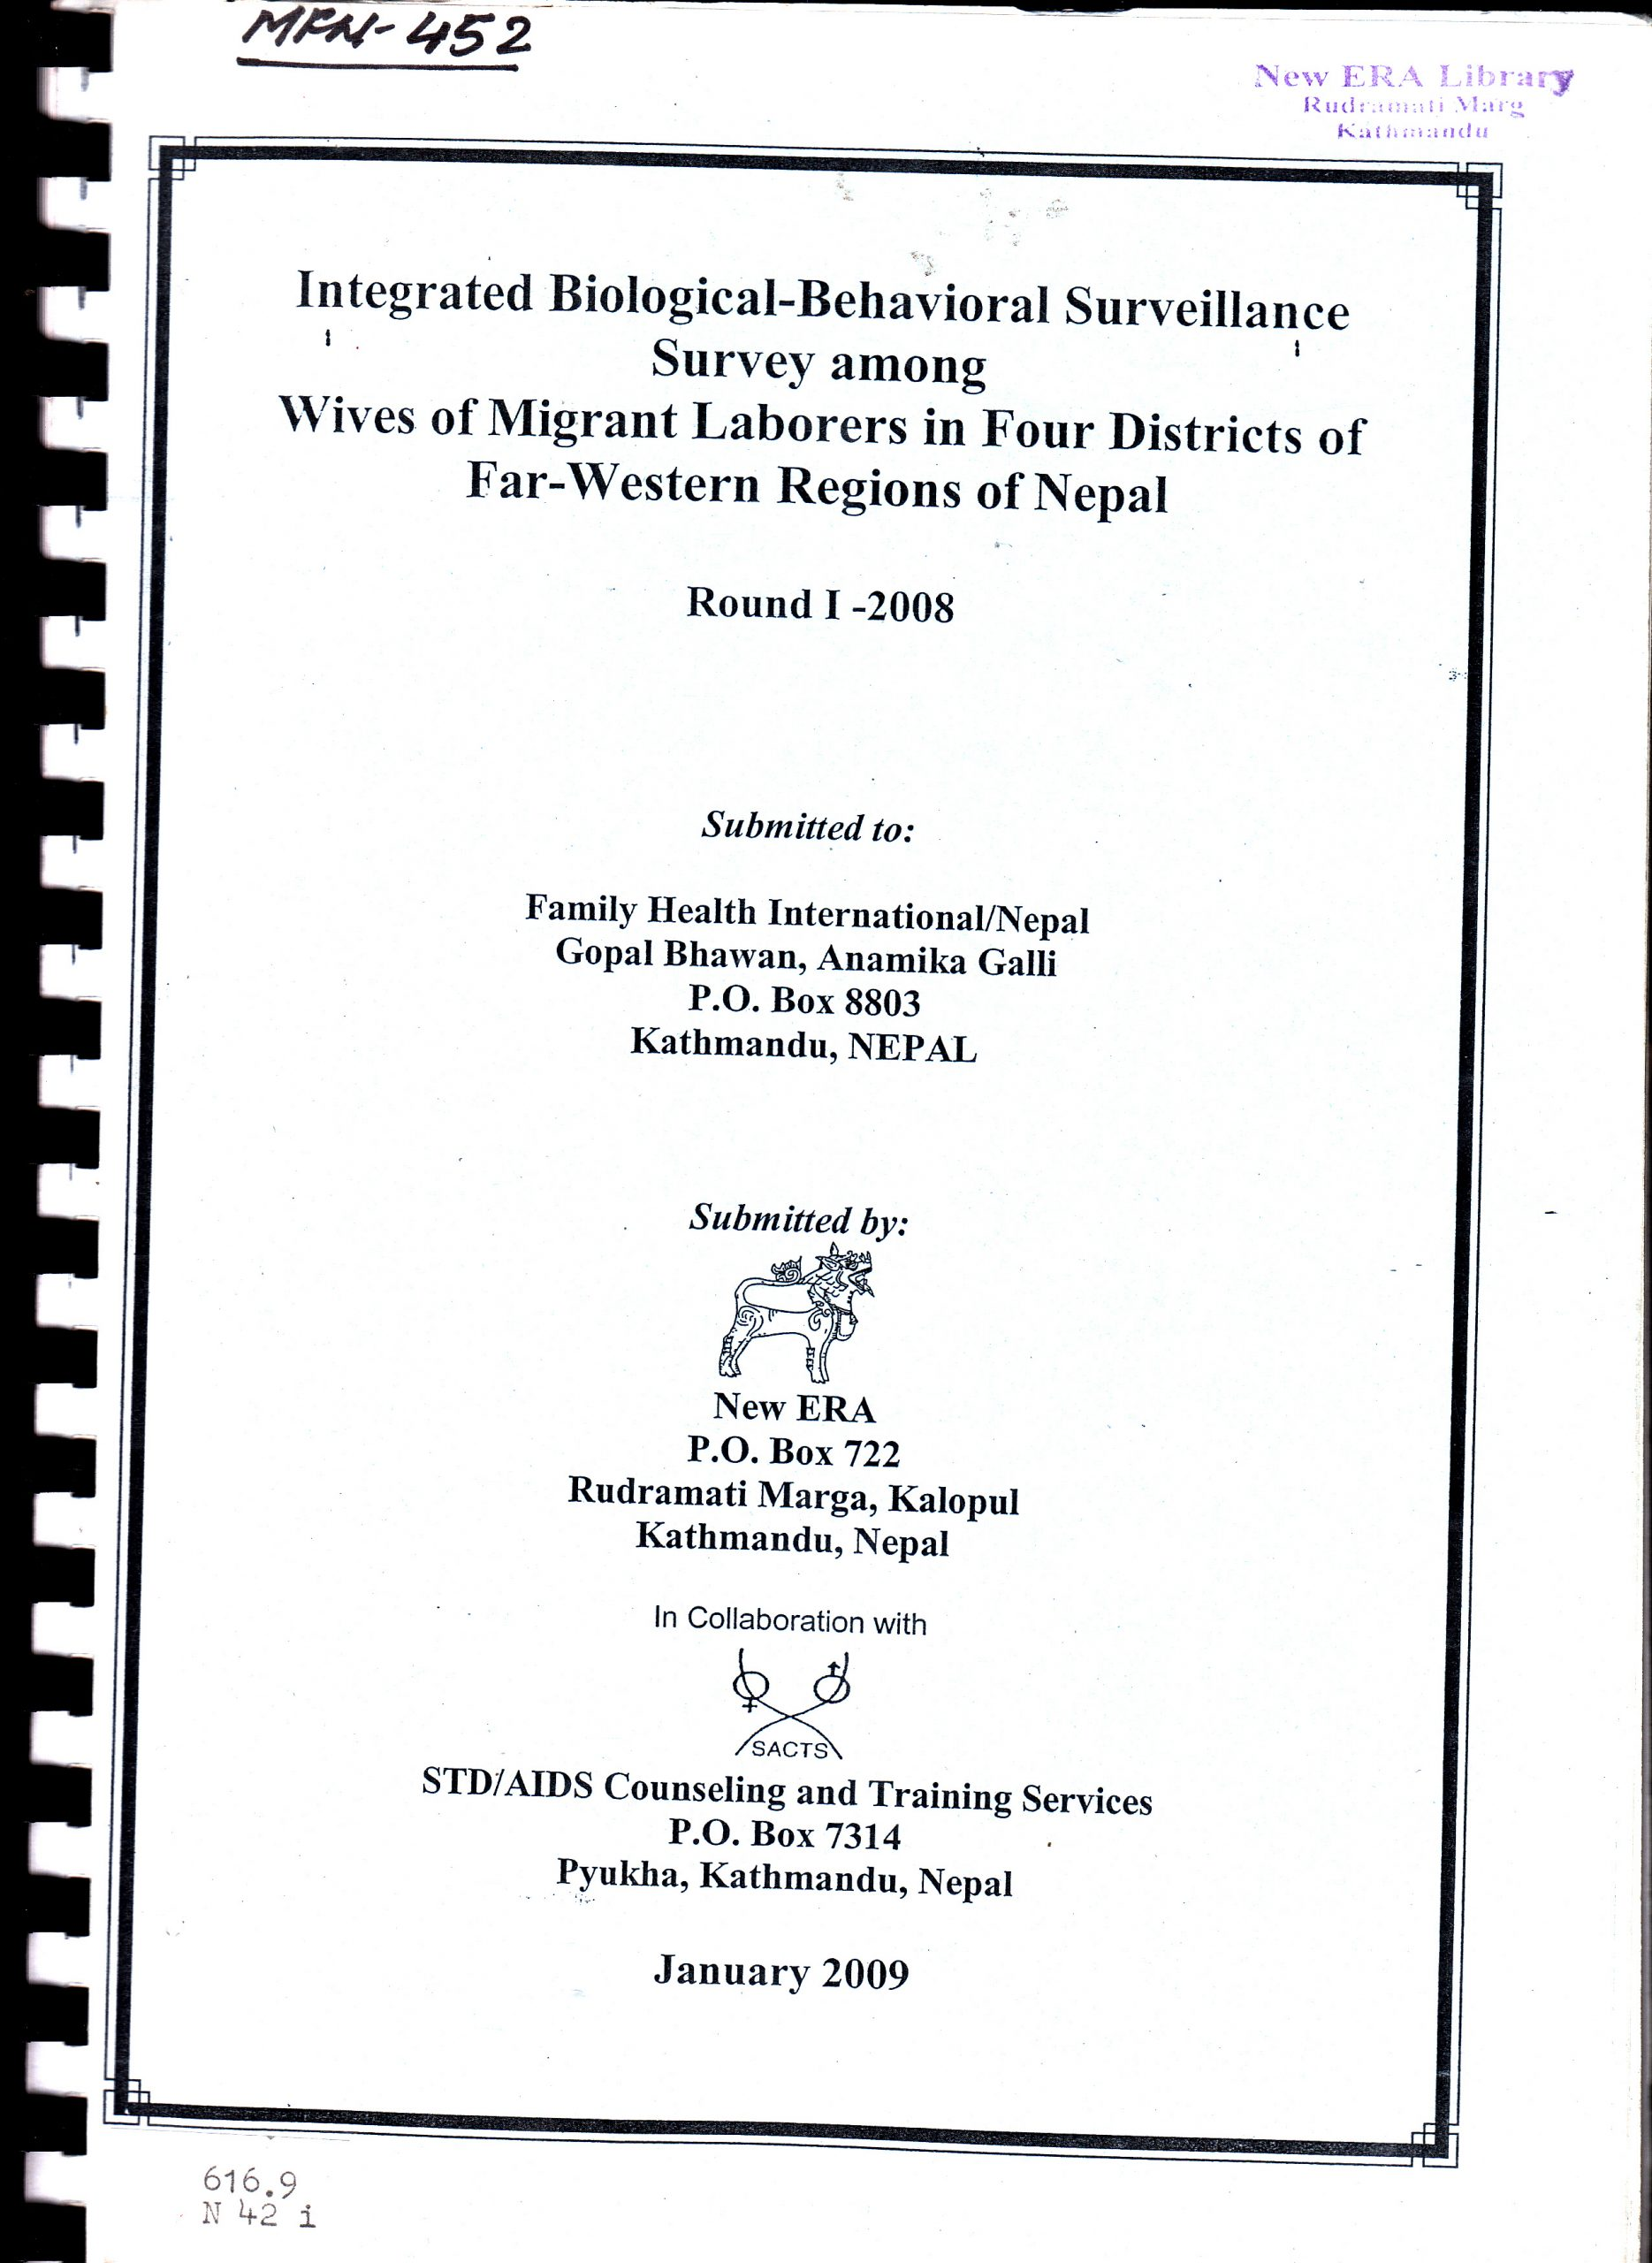 Integrated Bio-Behavioral Survey among Wives of Migrant Laborers in Four Districts of Far Western Regions of Nepal, Round I – 2008